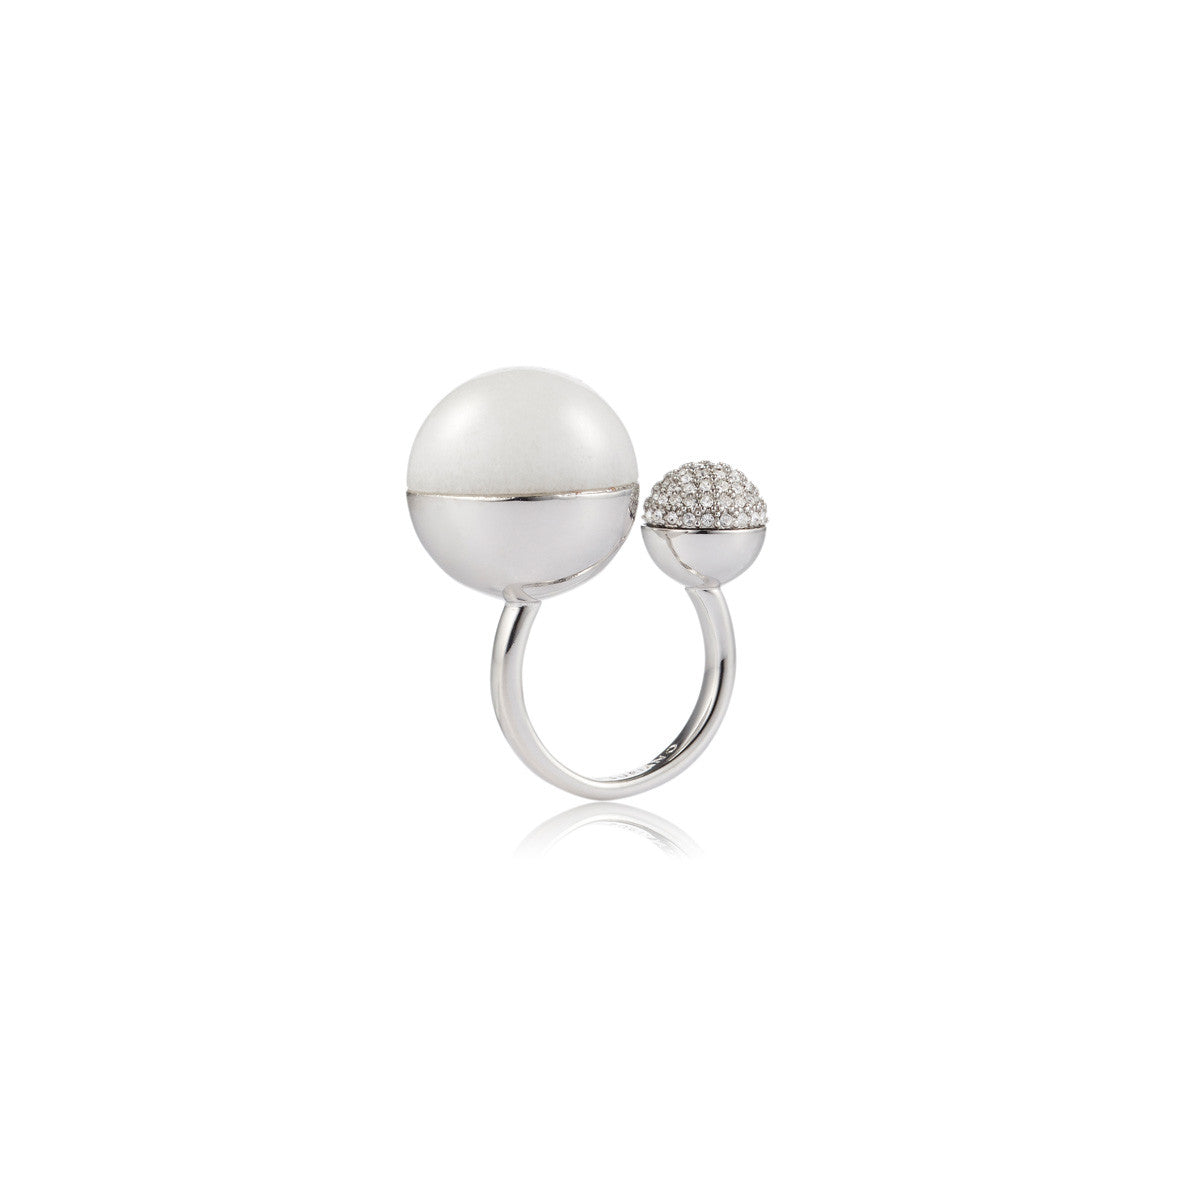 Solid brass, rhodium plated Luna Ascension ring with white agate and Swarovski® crystal pavè detailing – front